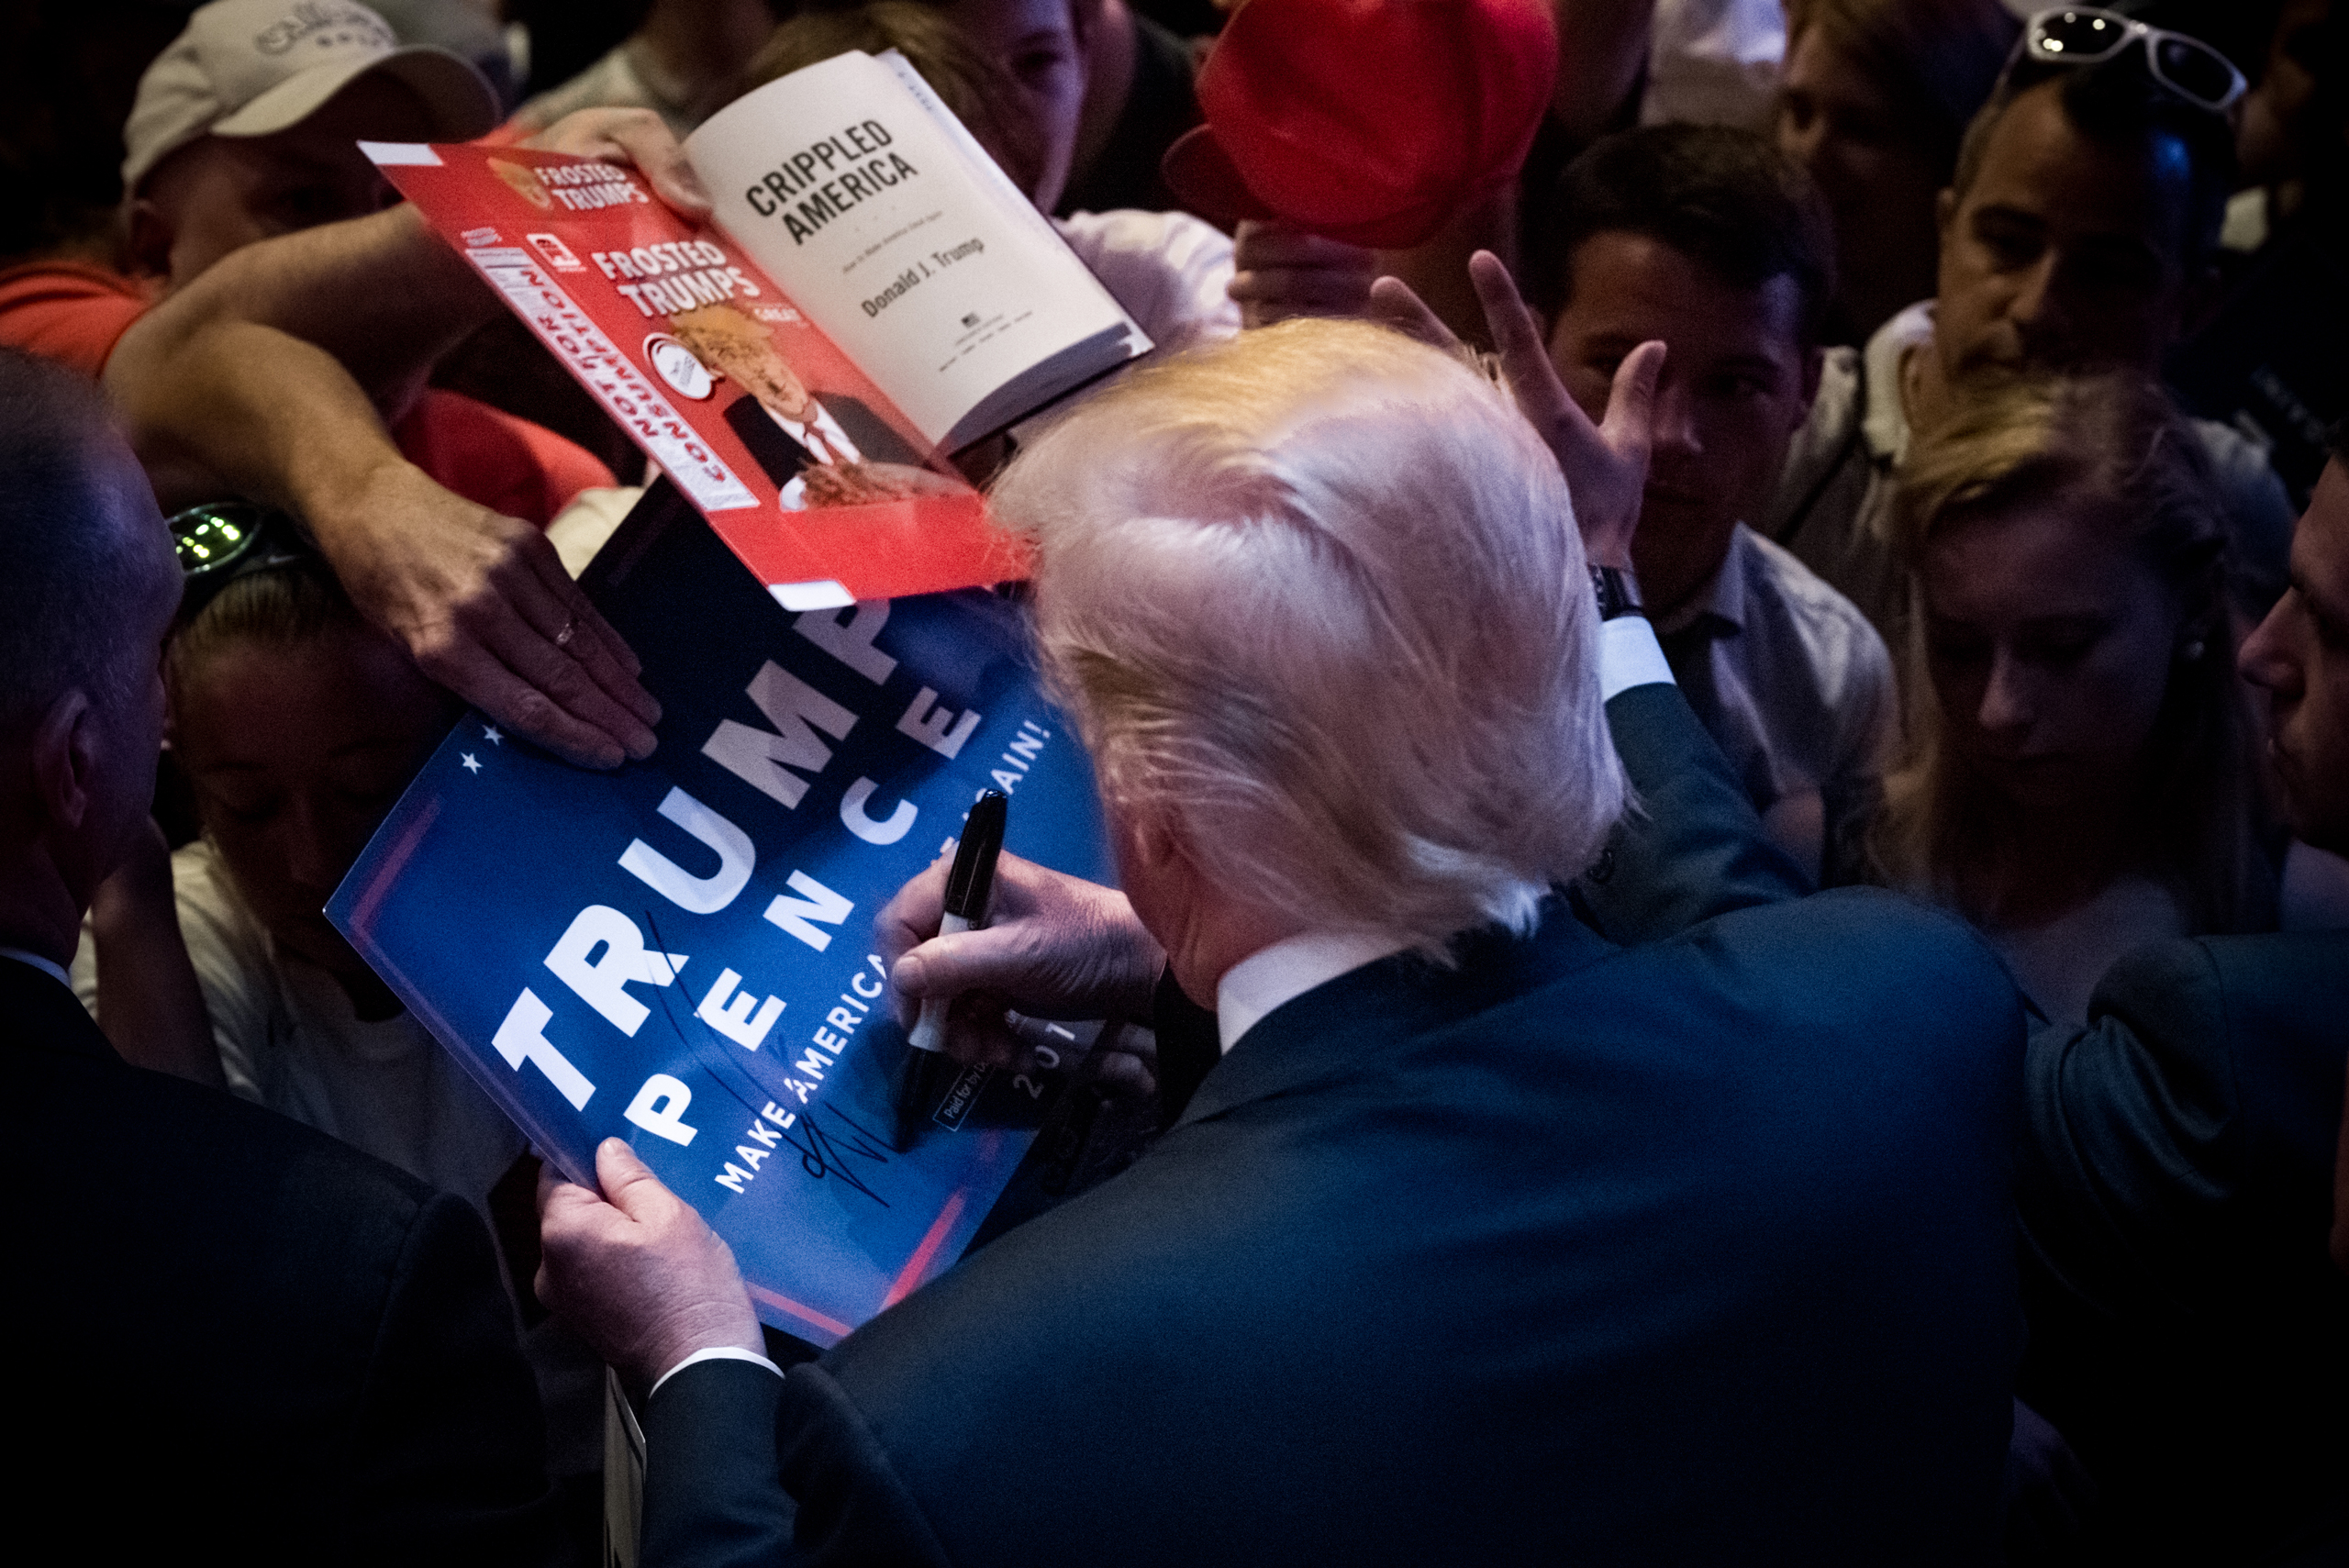 Donald J. Trump signs memorabilia while campaigning in Portland, Maine, on Aug. 4, 2016.